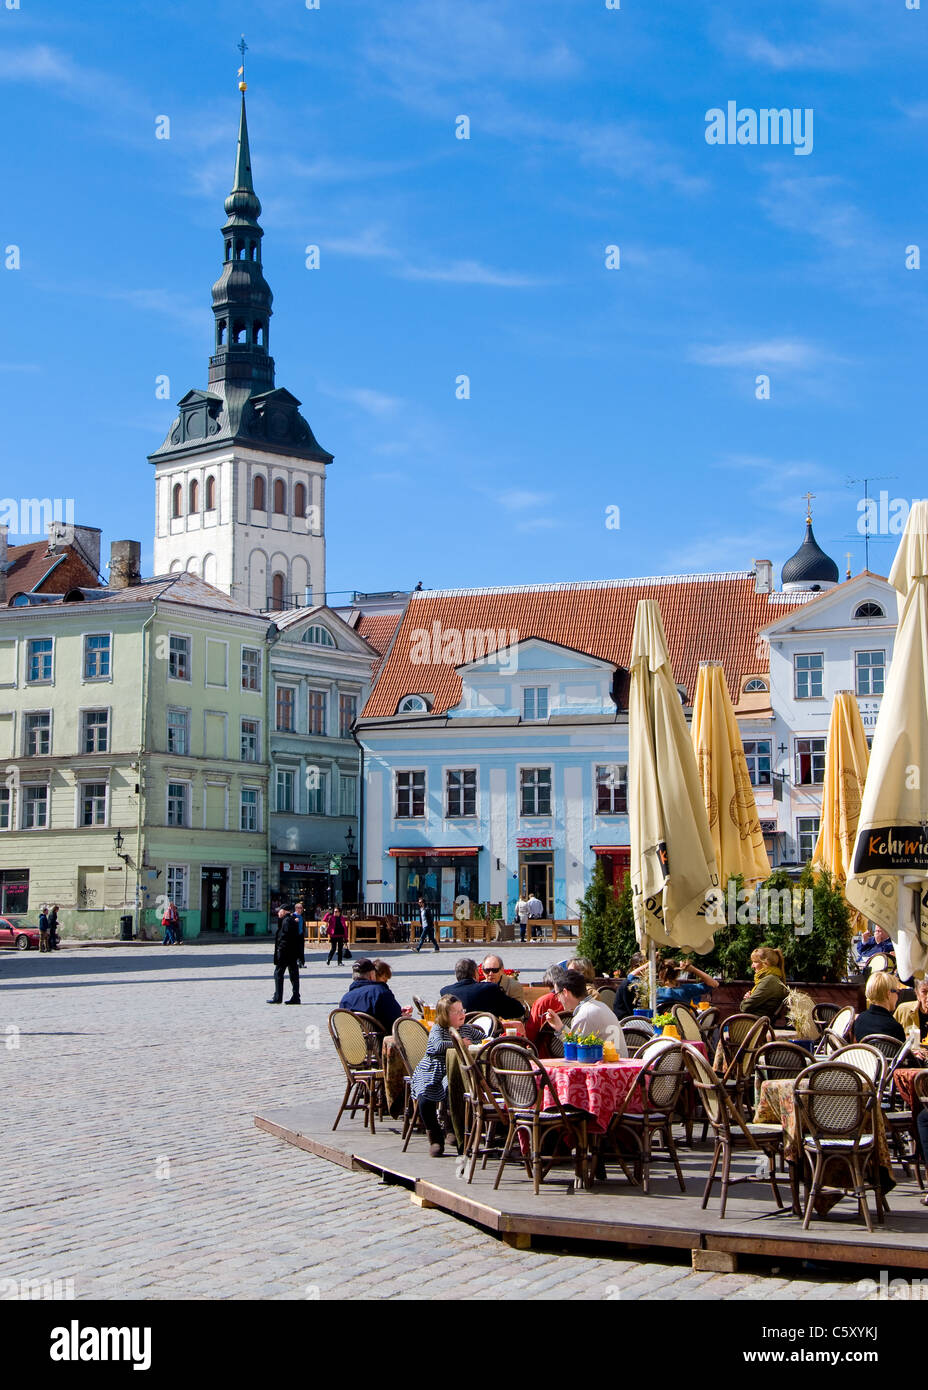 Town Hall Square, Tallinn, Estonia - Stock Image